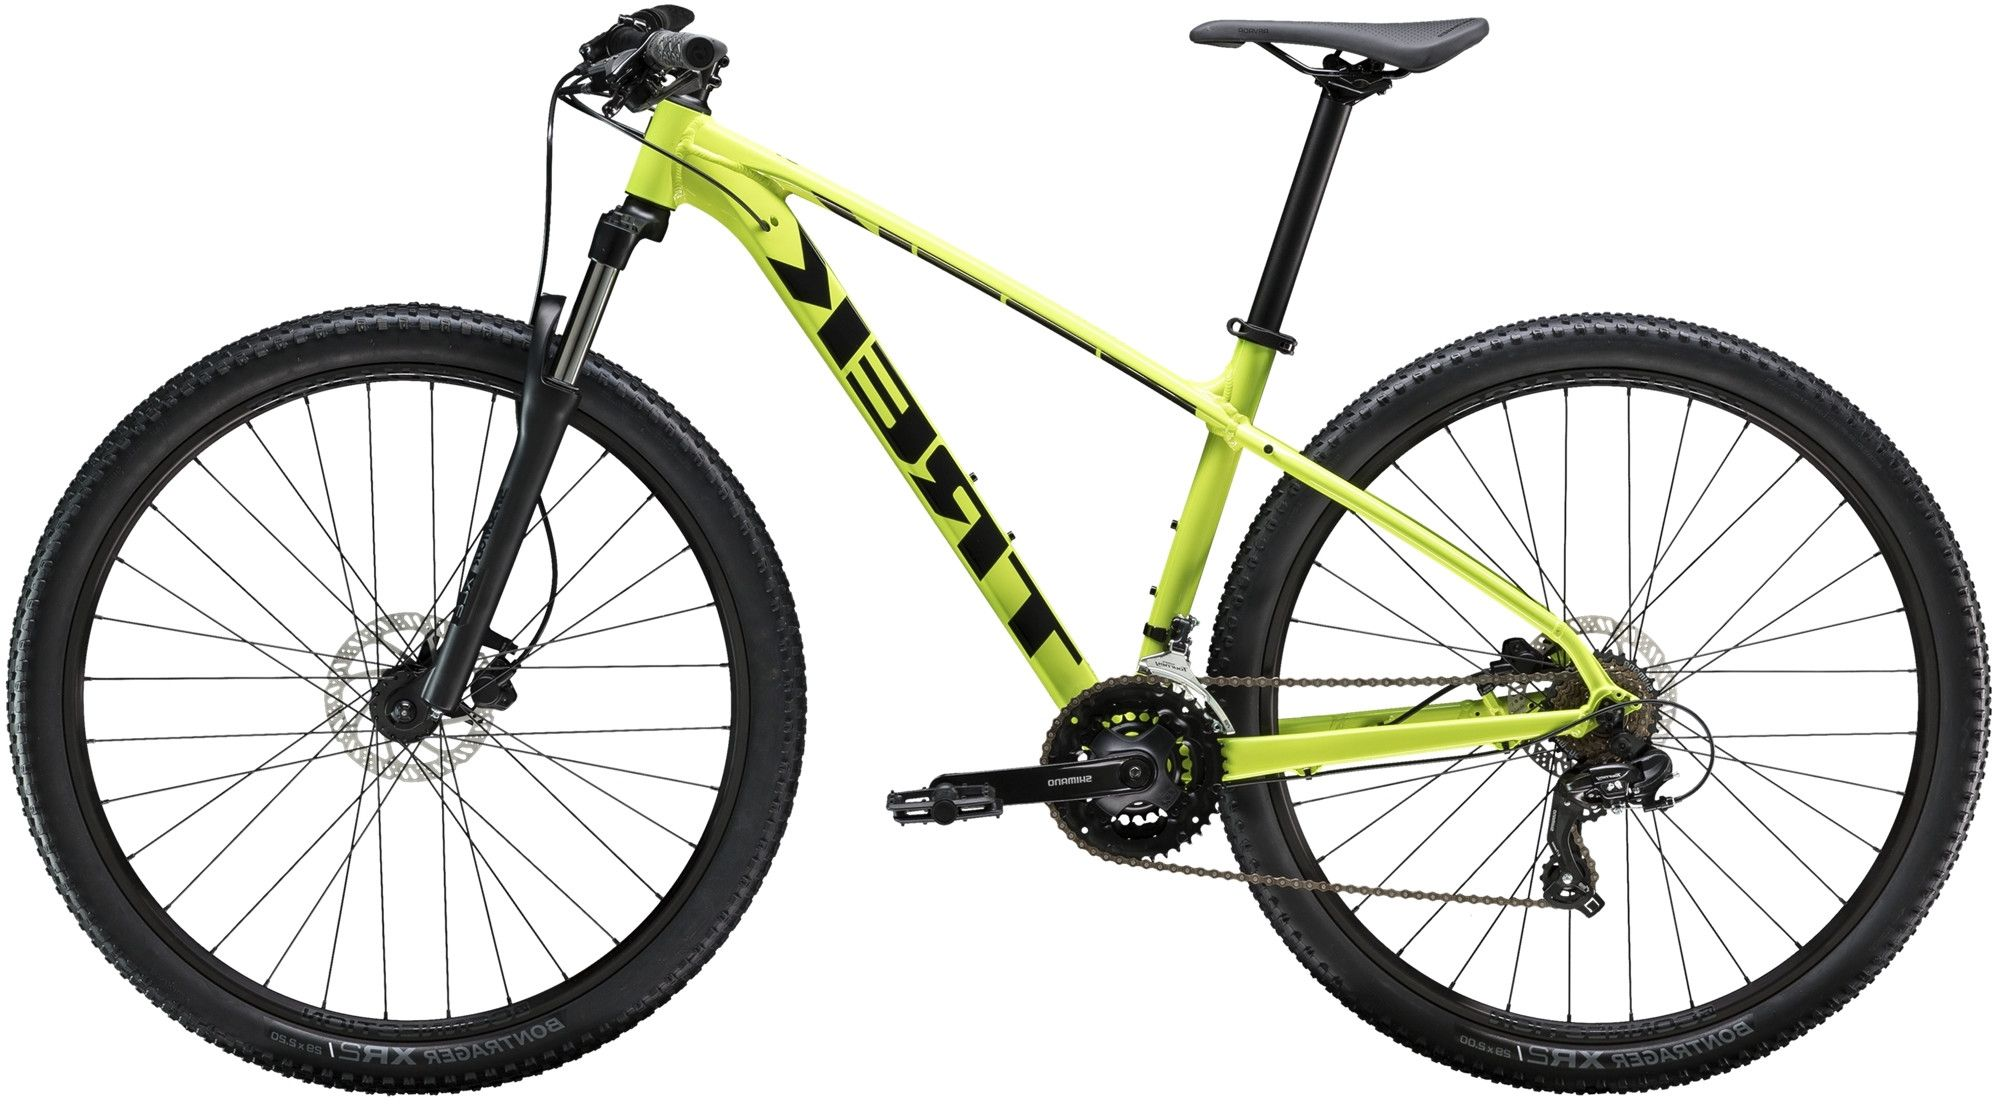 Marlin 5 Trek Bikes Ryan Trek Bikes Trek Mountain Bike Montain Bike